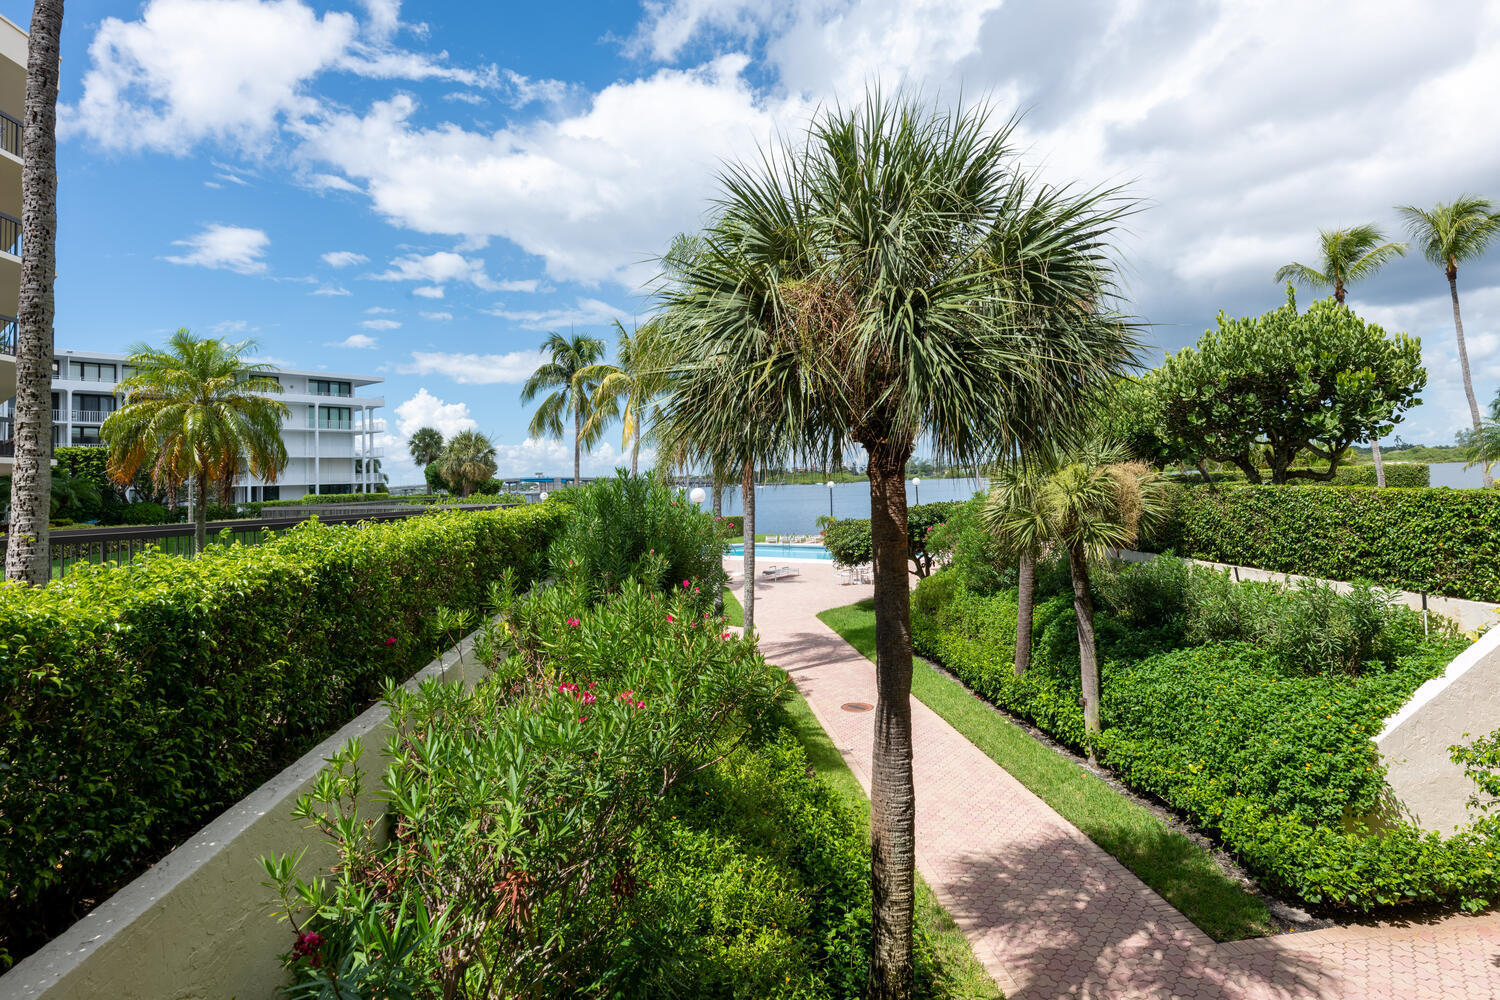 Sutton Place is the only Intracoastal condo in Palm Beach with garage parking priced under 2 million.This large corner 3 bedroom 3 bath unit has a wrap around balcony in a desirable full amenity building with 24 hr doorman, new gym, hallways and clubhouse on the pool deck. Gated deeded beach access gives owners the enjoyment of both ocean and intracoastal waterway to view the boating activity or play in the sand and surf. The Four Seasons resort and Spa is just across the street and restaurants, shopping and Par 3 Golf Course are within a walk or close drive. Parking spaces #4 garage and #2 open.